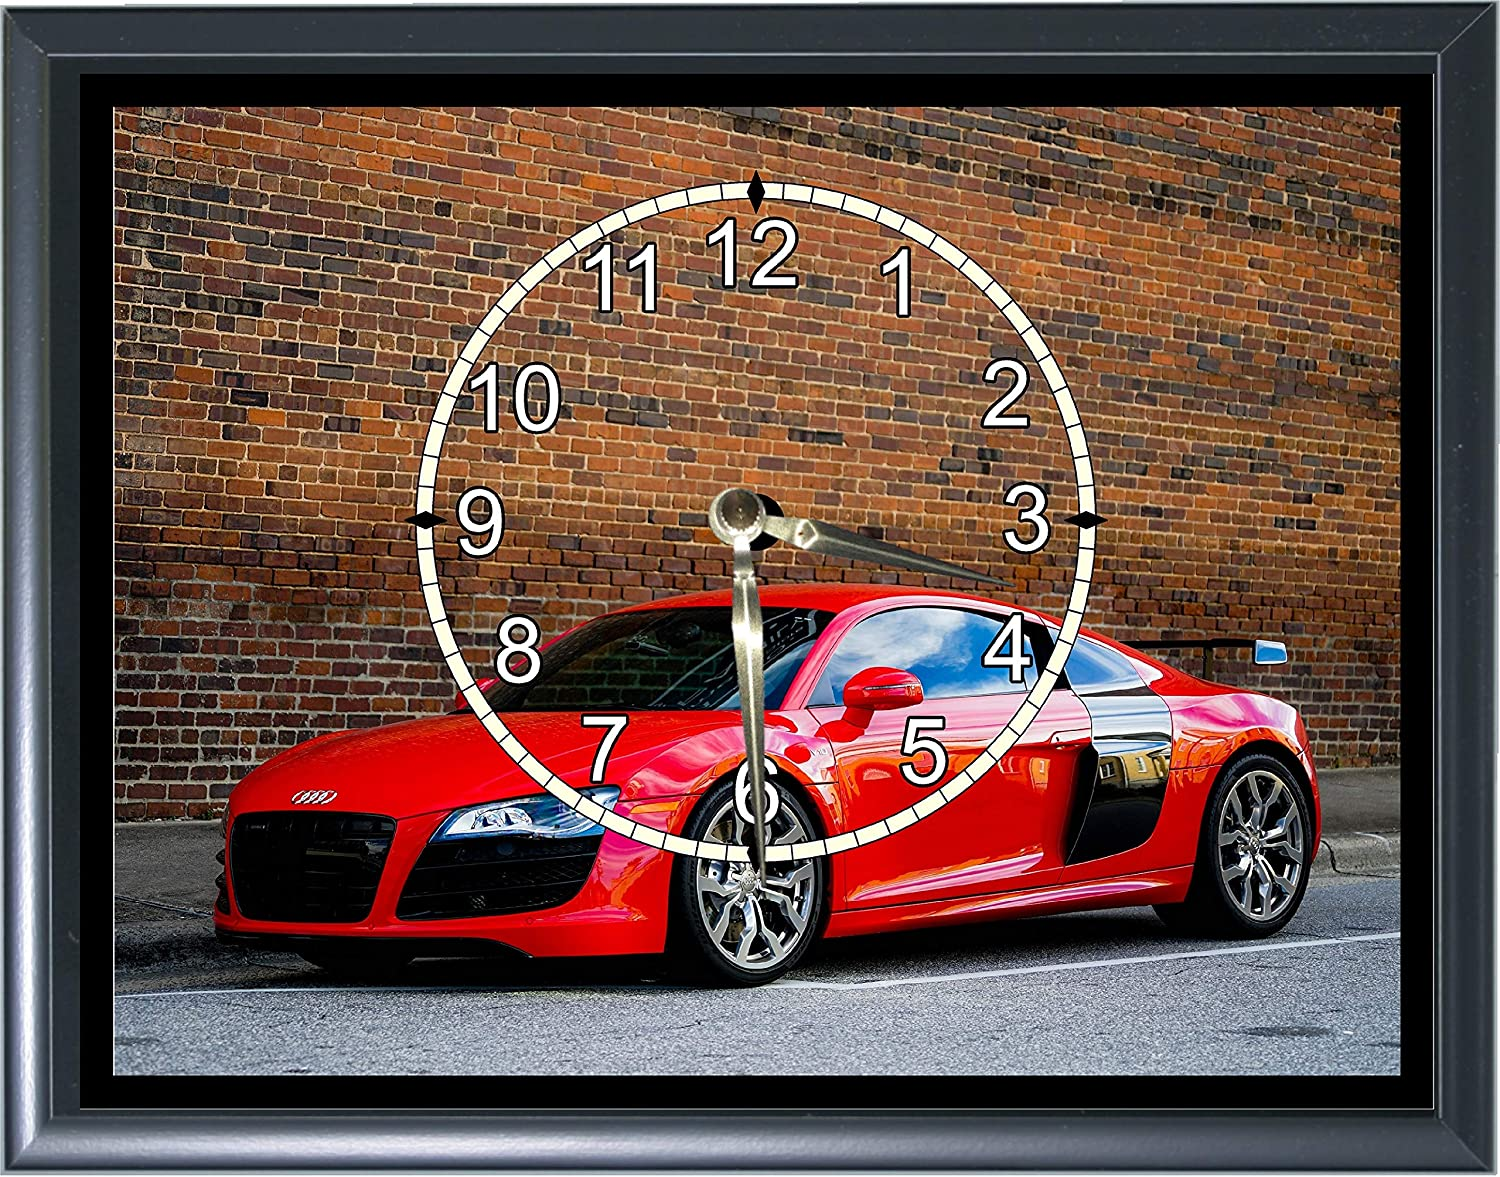 Audi R8 Desk or Wall Plaque Clock 7x 9 with Photo Realistic Picture